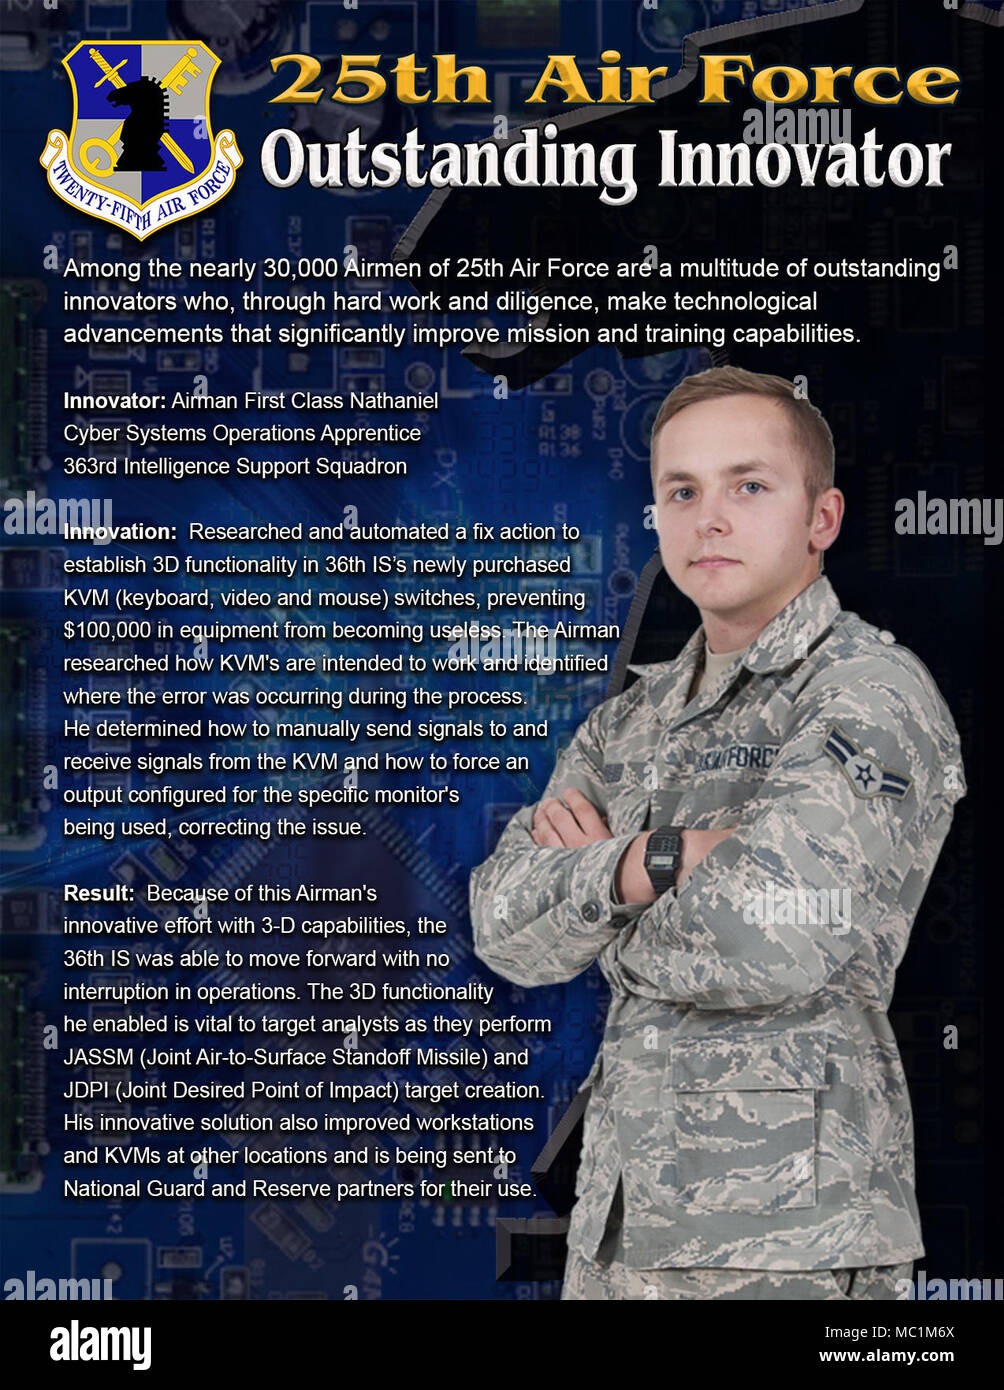 When Airmen at the 363rd Intelligence Support Squadron discovered an issue with the three dimensional functionality on computer workstations vital to target analysts, one of their own highly-skilled Airmen found a solution and prevented $100,000 in equipment from becoming useless. Airman 1st Class Nathaniel, a cyber systems operations apprentice, researched and automated a fix action to establish 3D functionality in 36th IS's newly purchased KVM (Keyboard, Video and Mouse) switches. Stock Photo